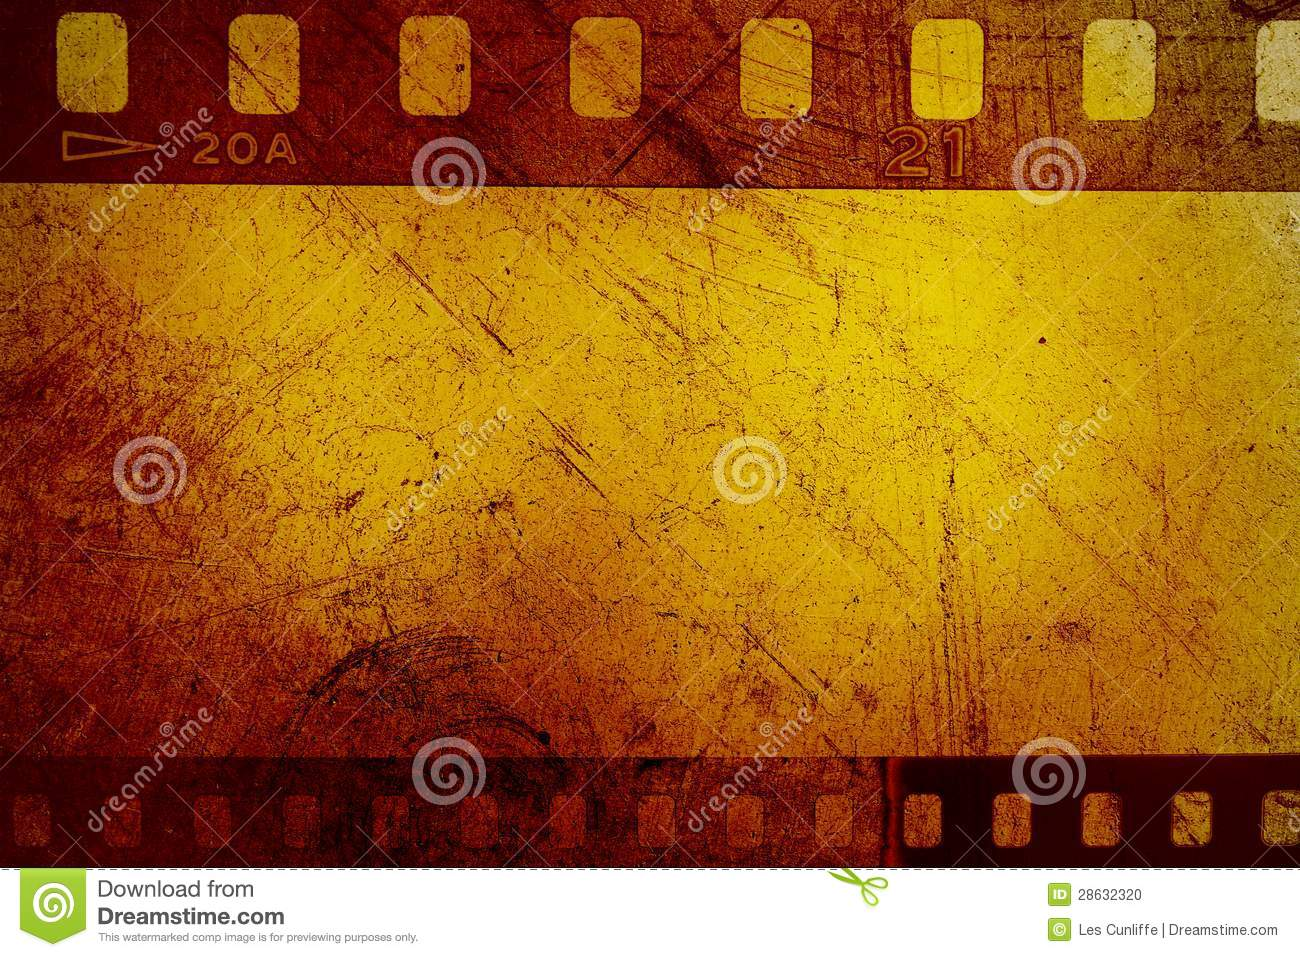 Film Negatives Stock Photo - Image: 28632320